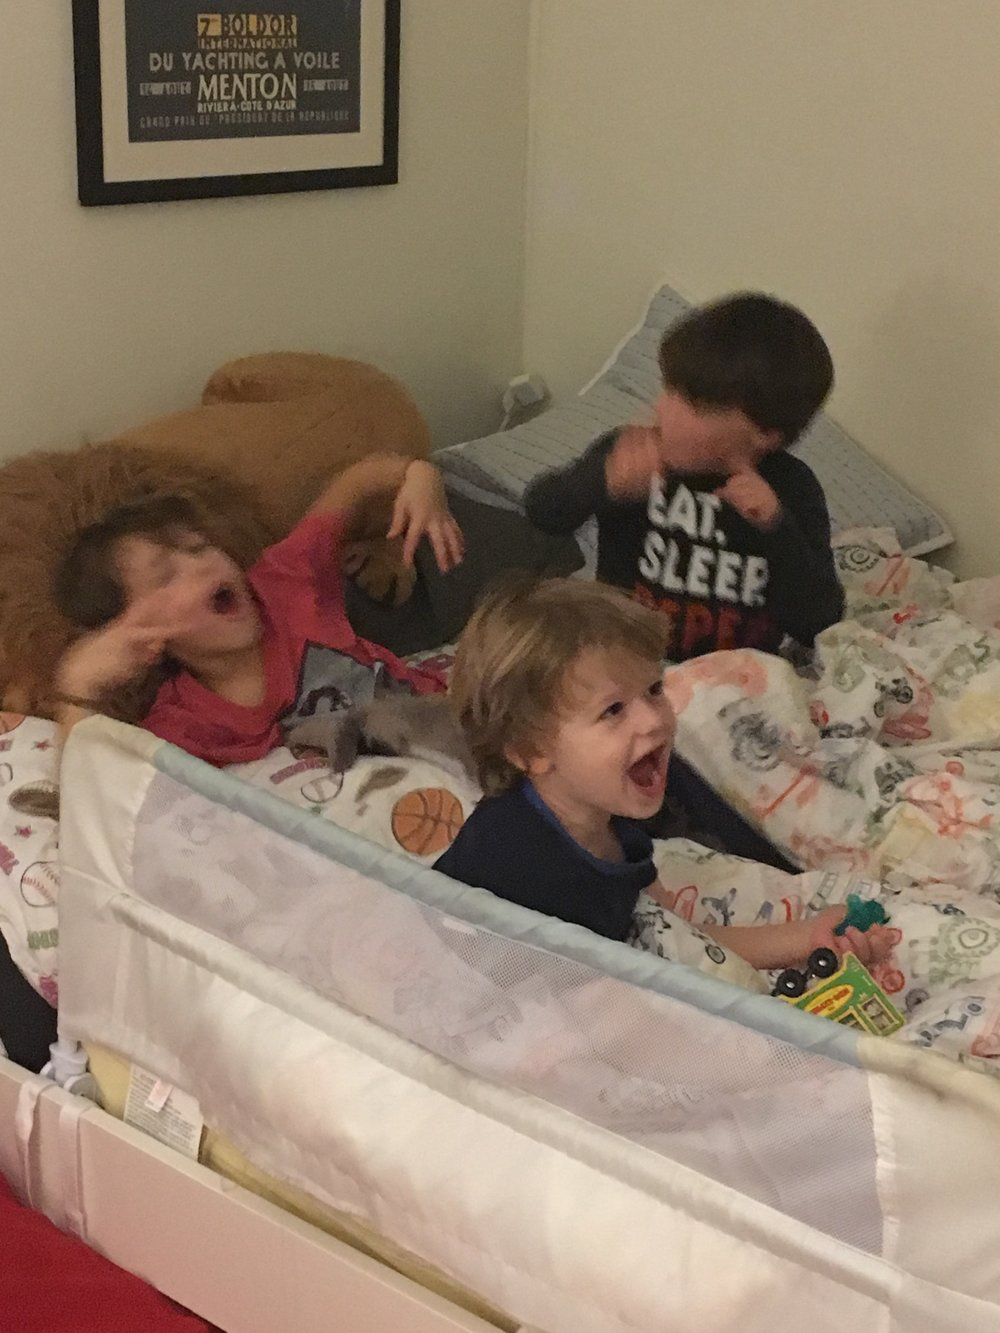 All 3 had to break in the big boy bed, of course!